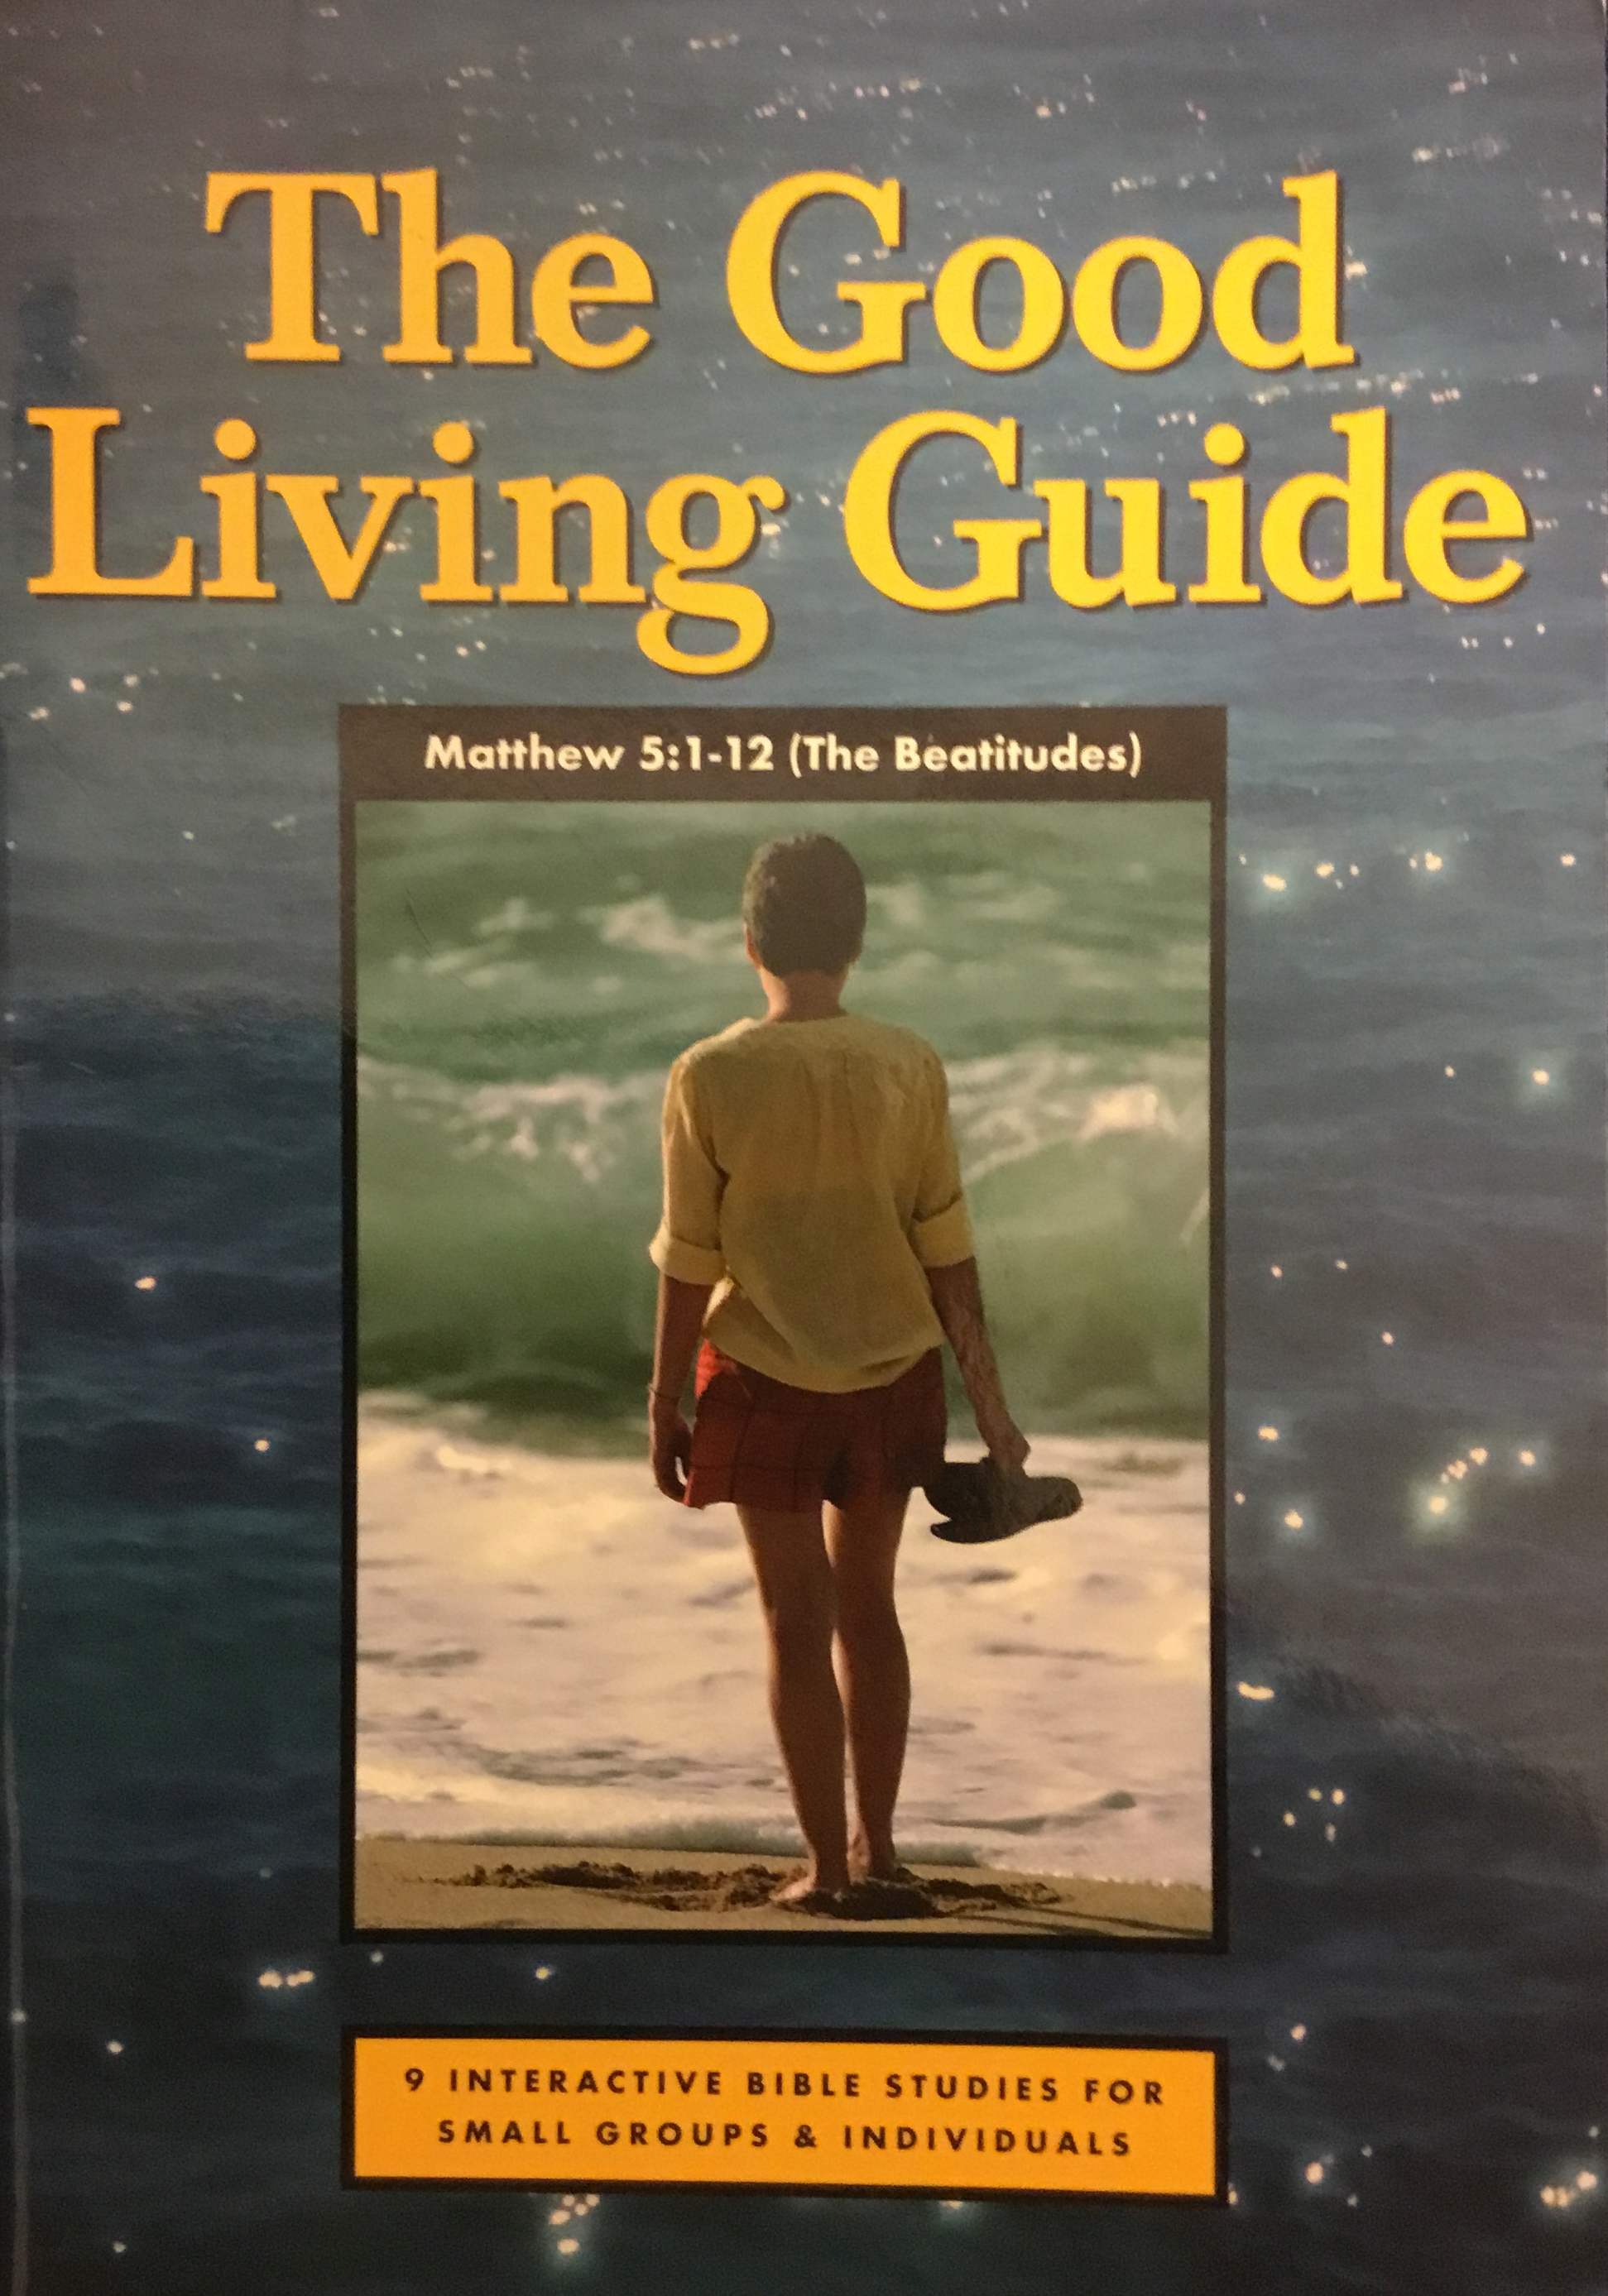 The good living guide